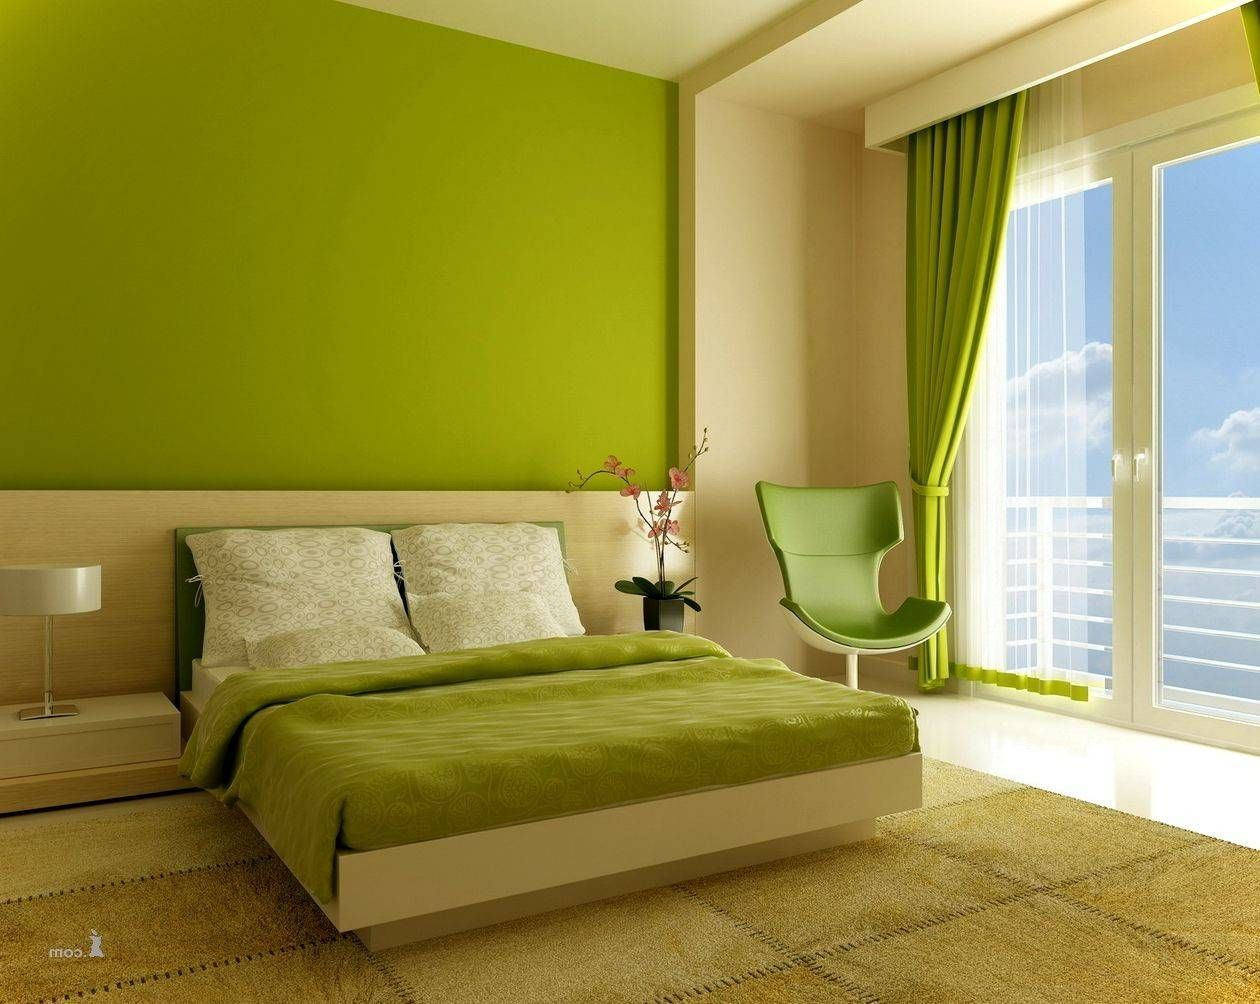 Bedroom Wall Colors Asian Paints in 2020 Green and white